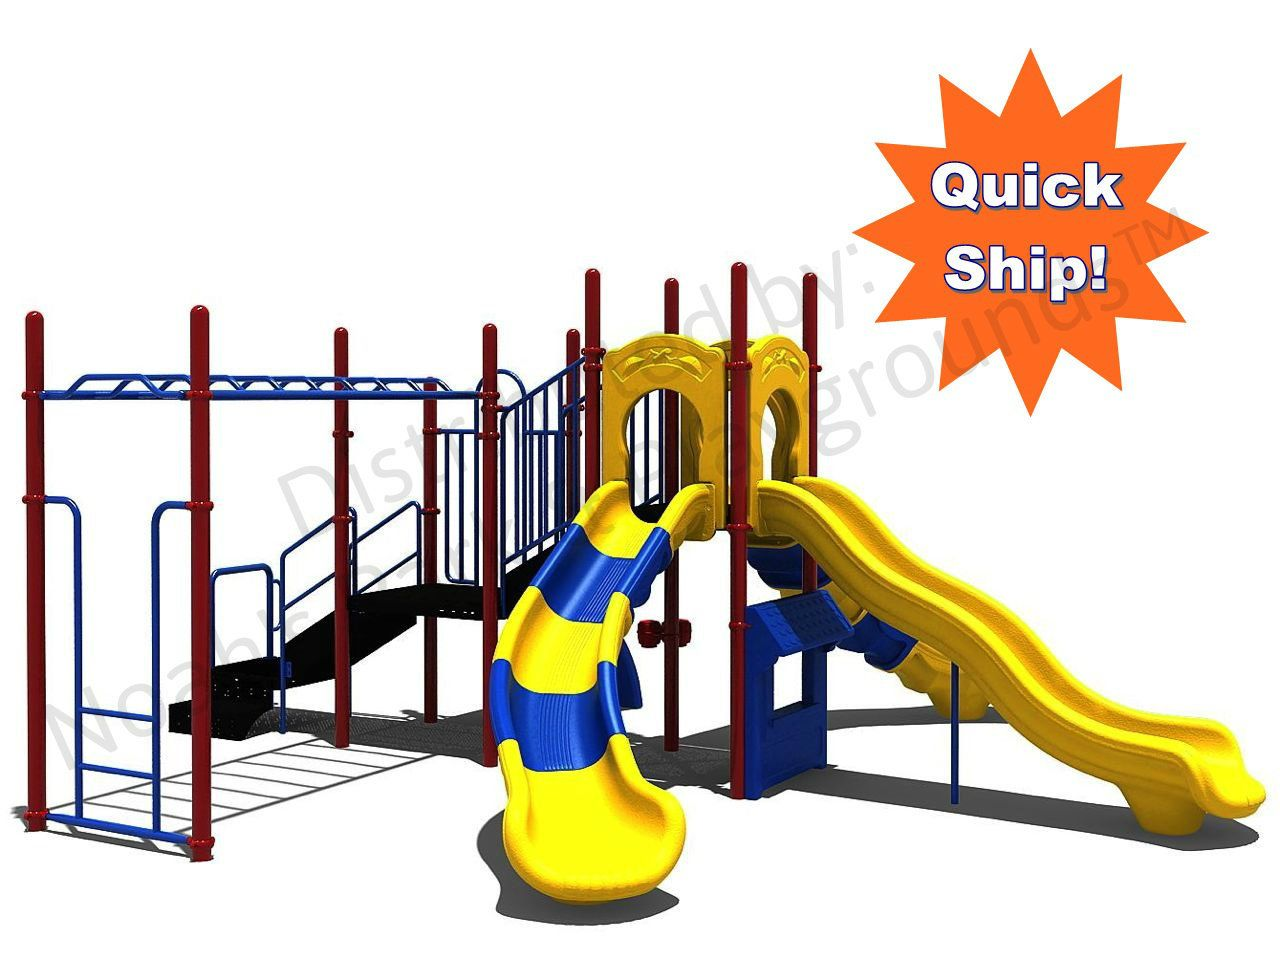 Quick Ship Structure 008 Quick ship, Playground